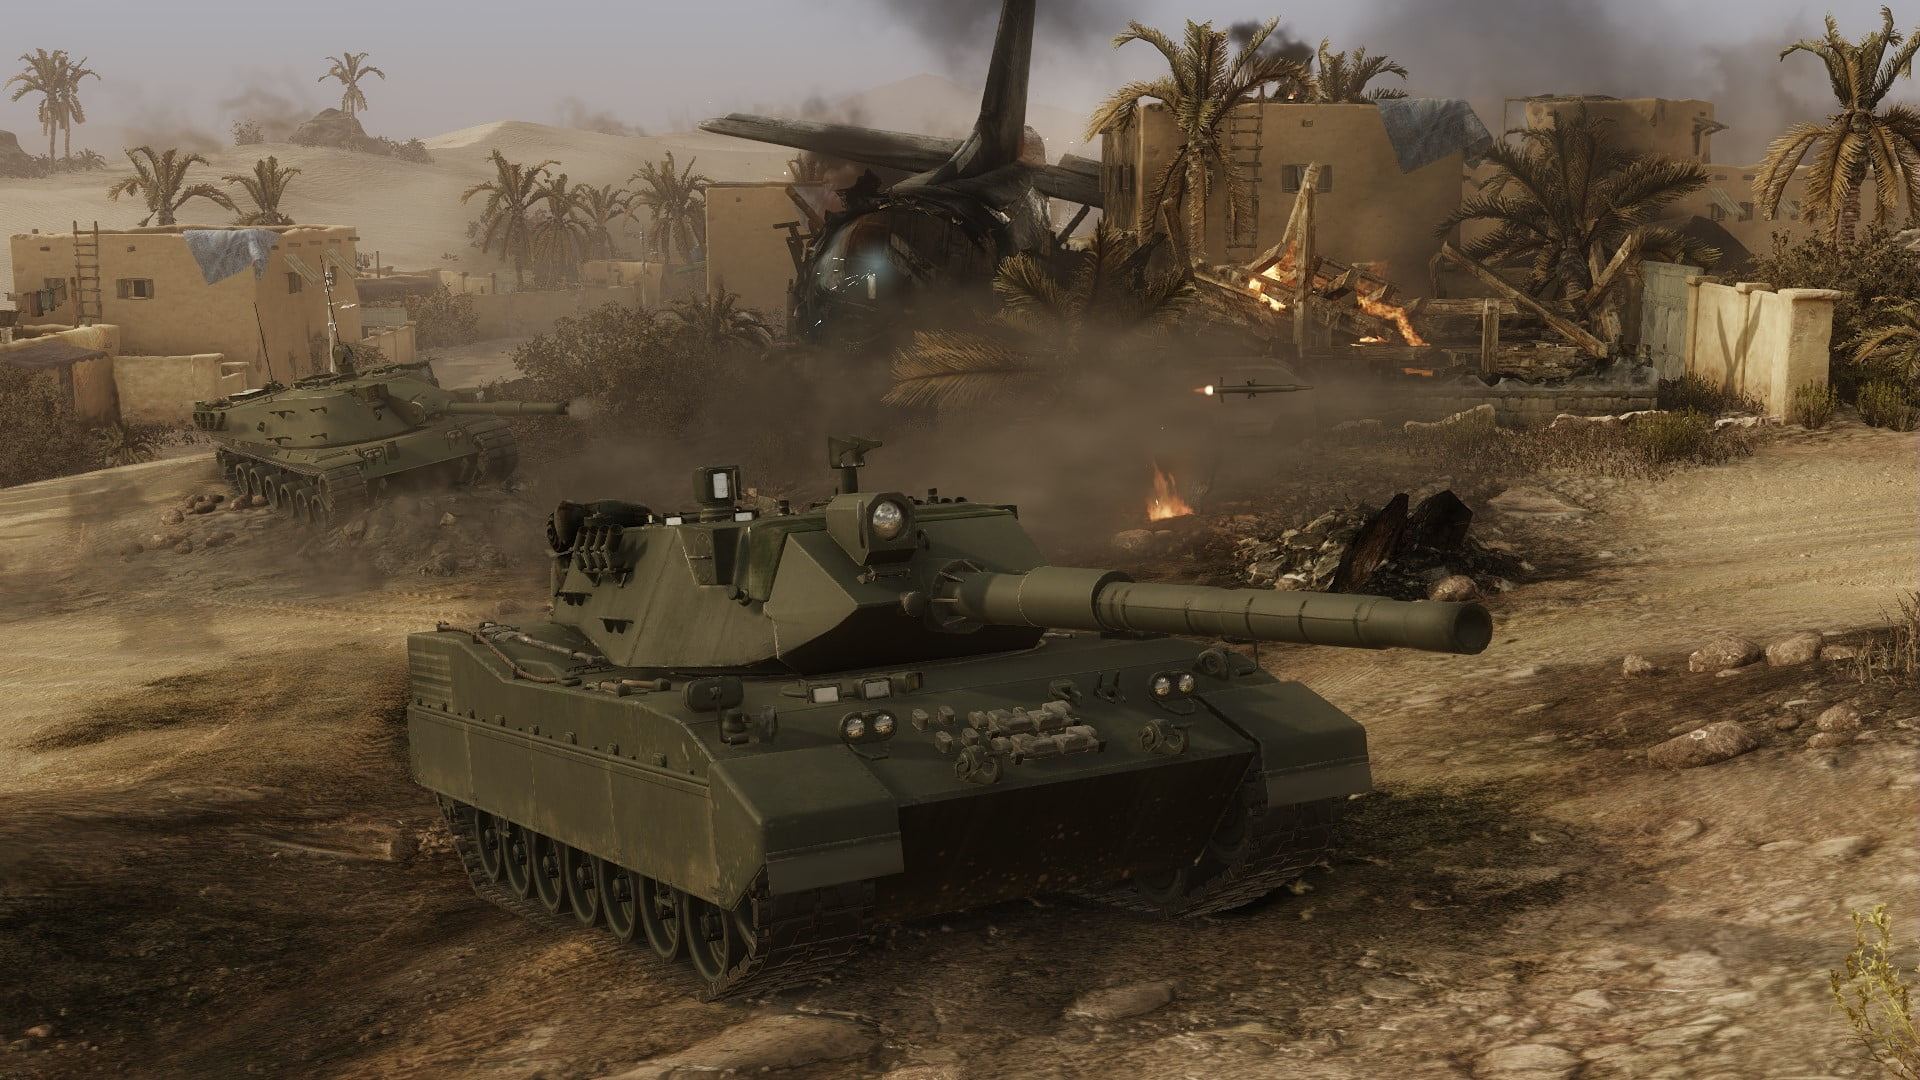 Armored warfare release date in Melbourne